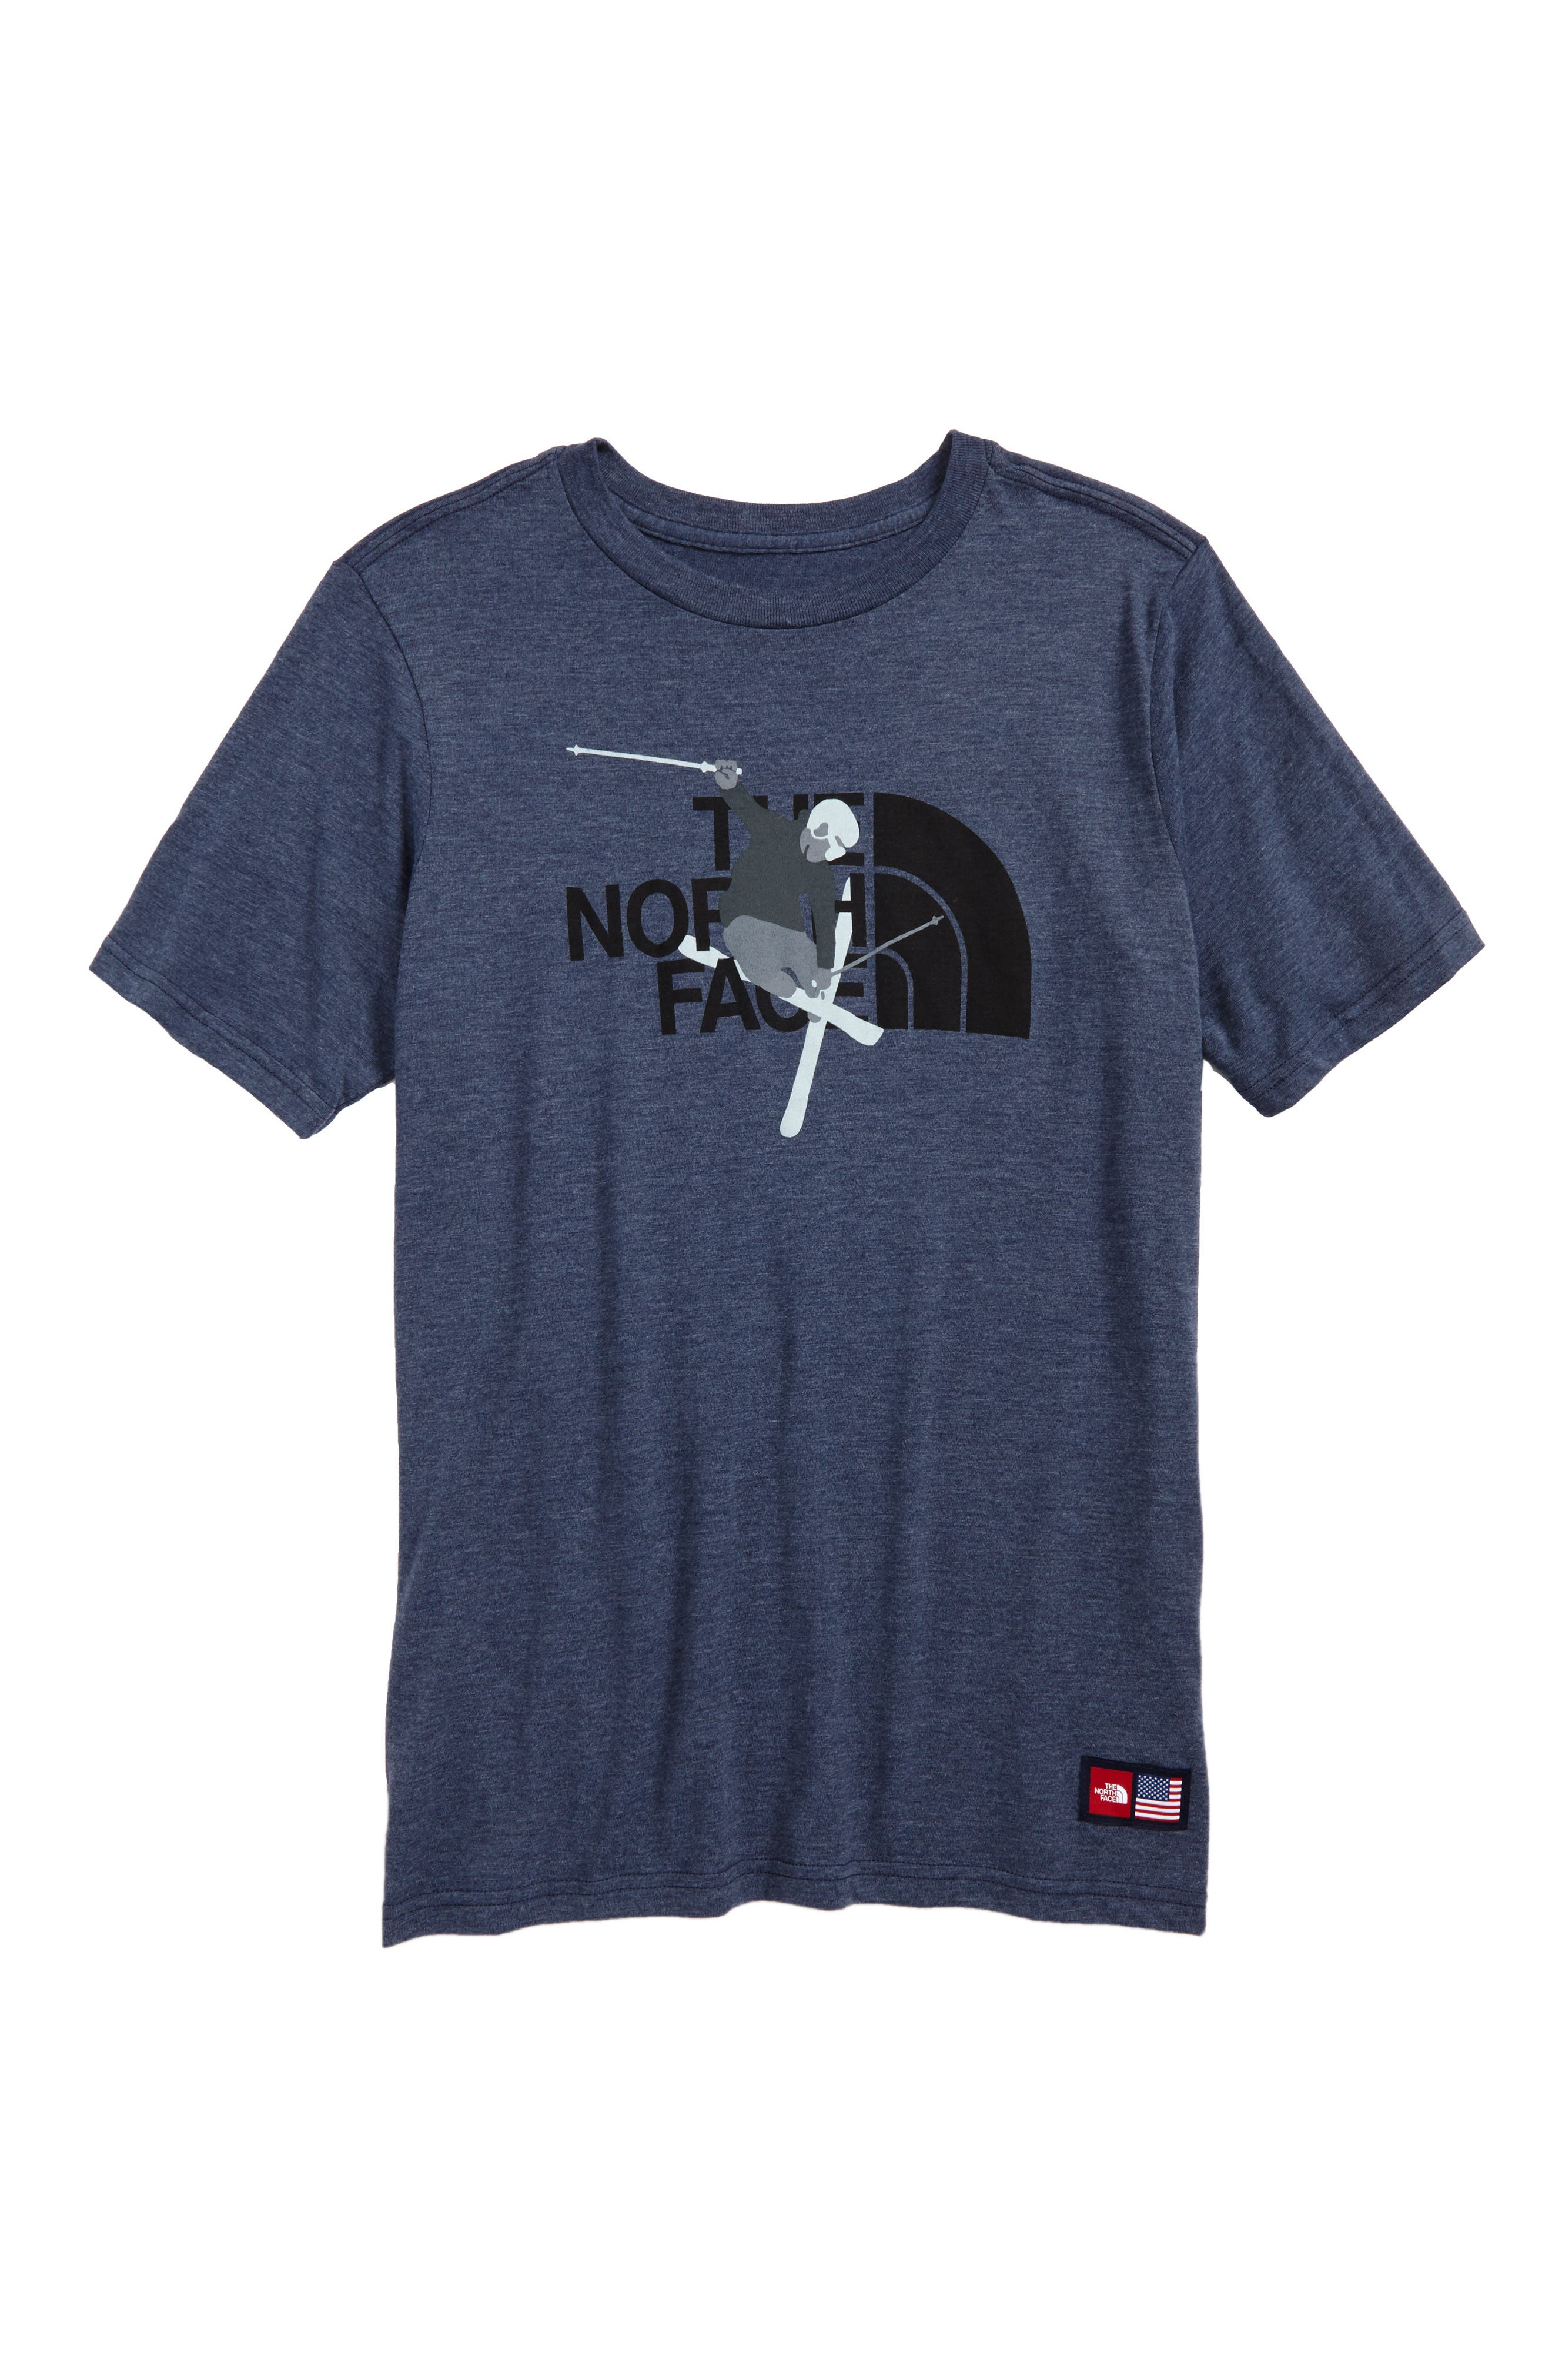 International Collection T-Shirt,                         Main,                         color, Cosmic Blue Heather